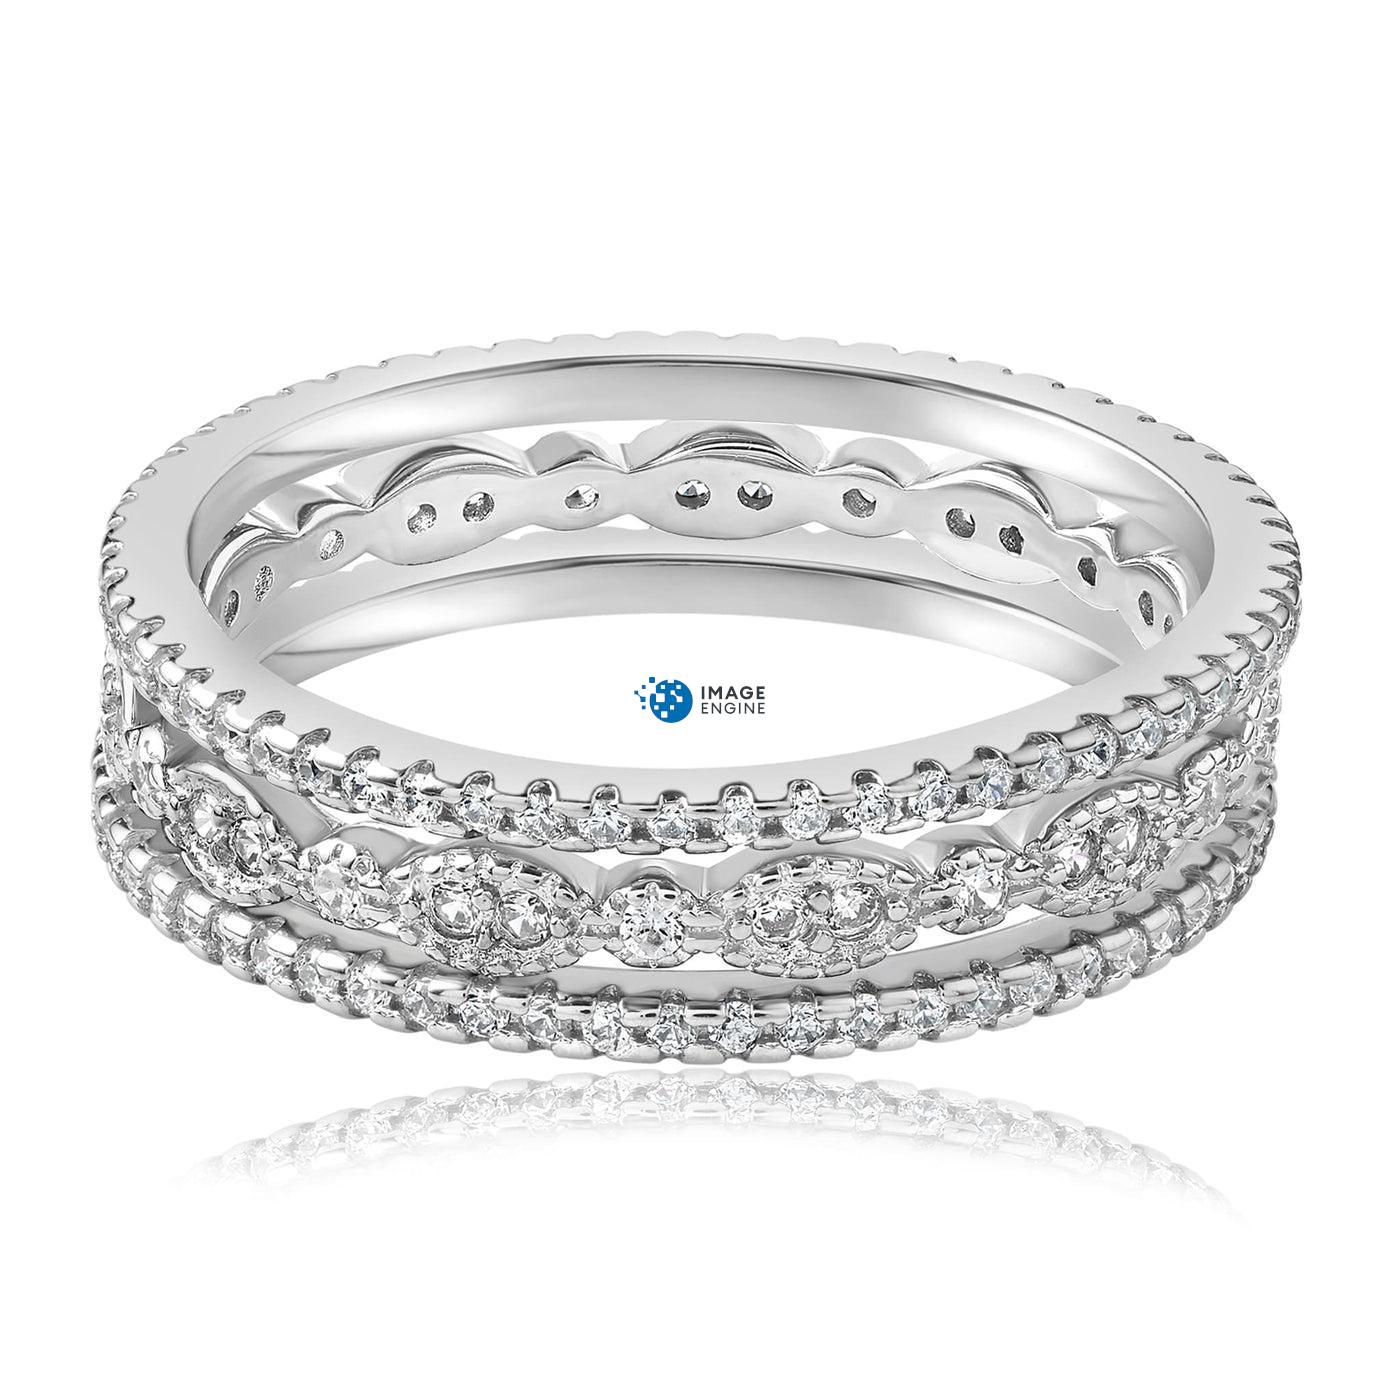 Juliana 3 Ring Set - Front View Facing Down - 925 Sterling Silver